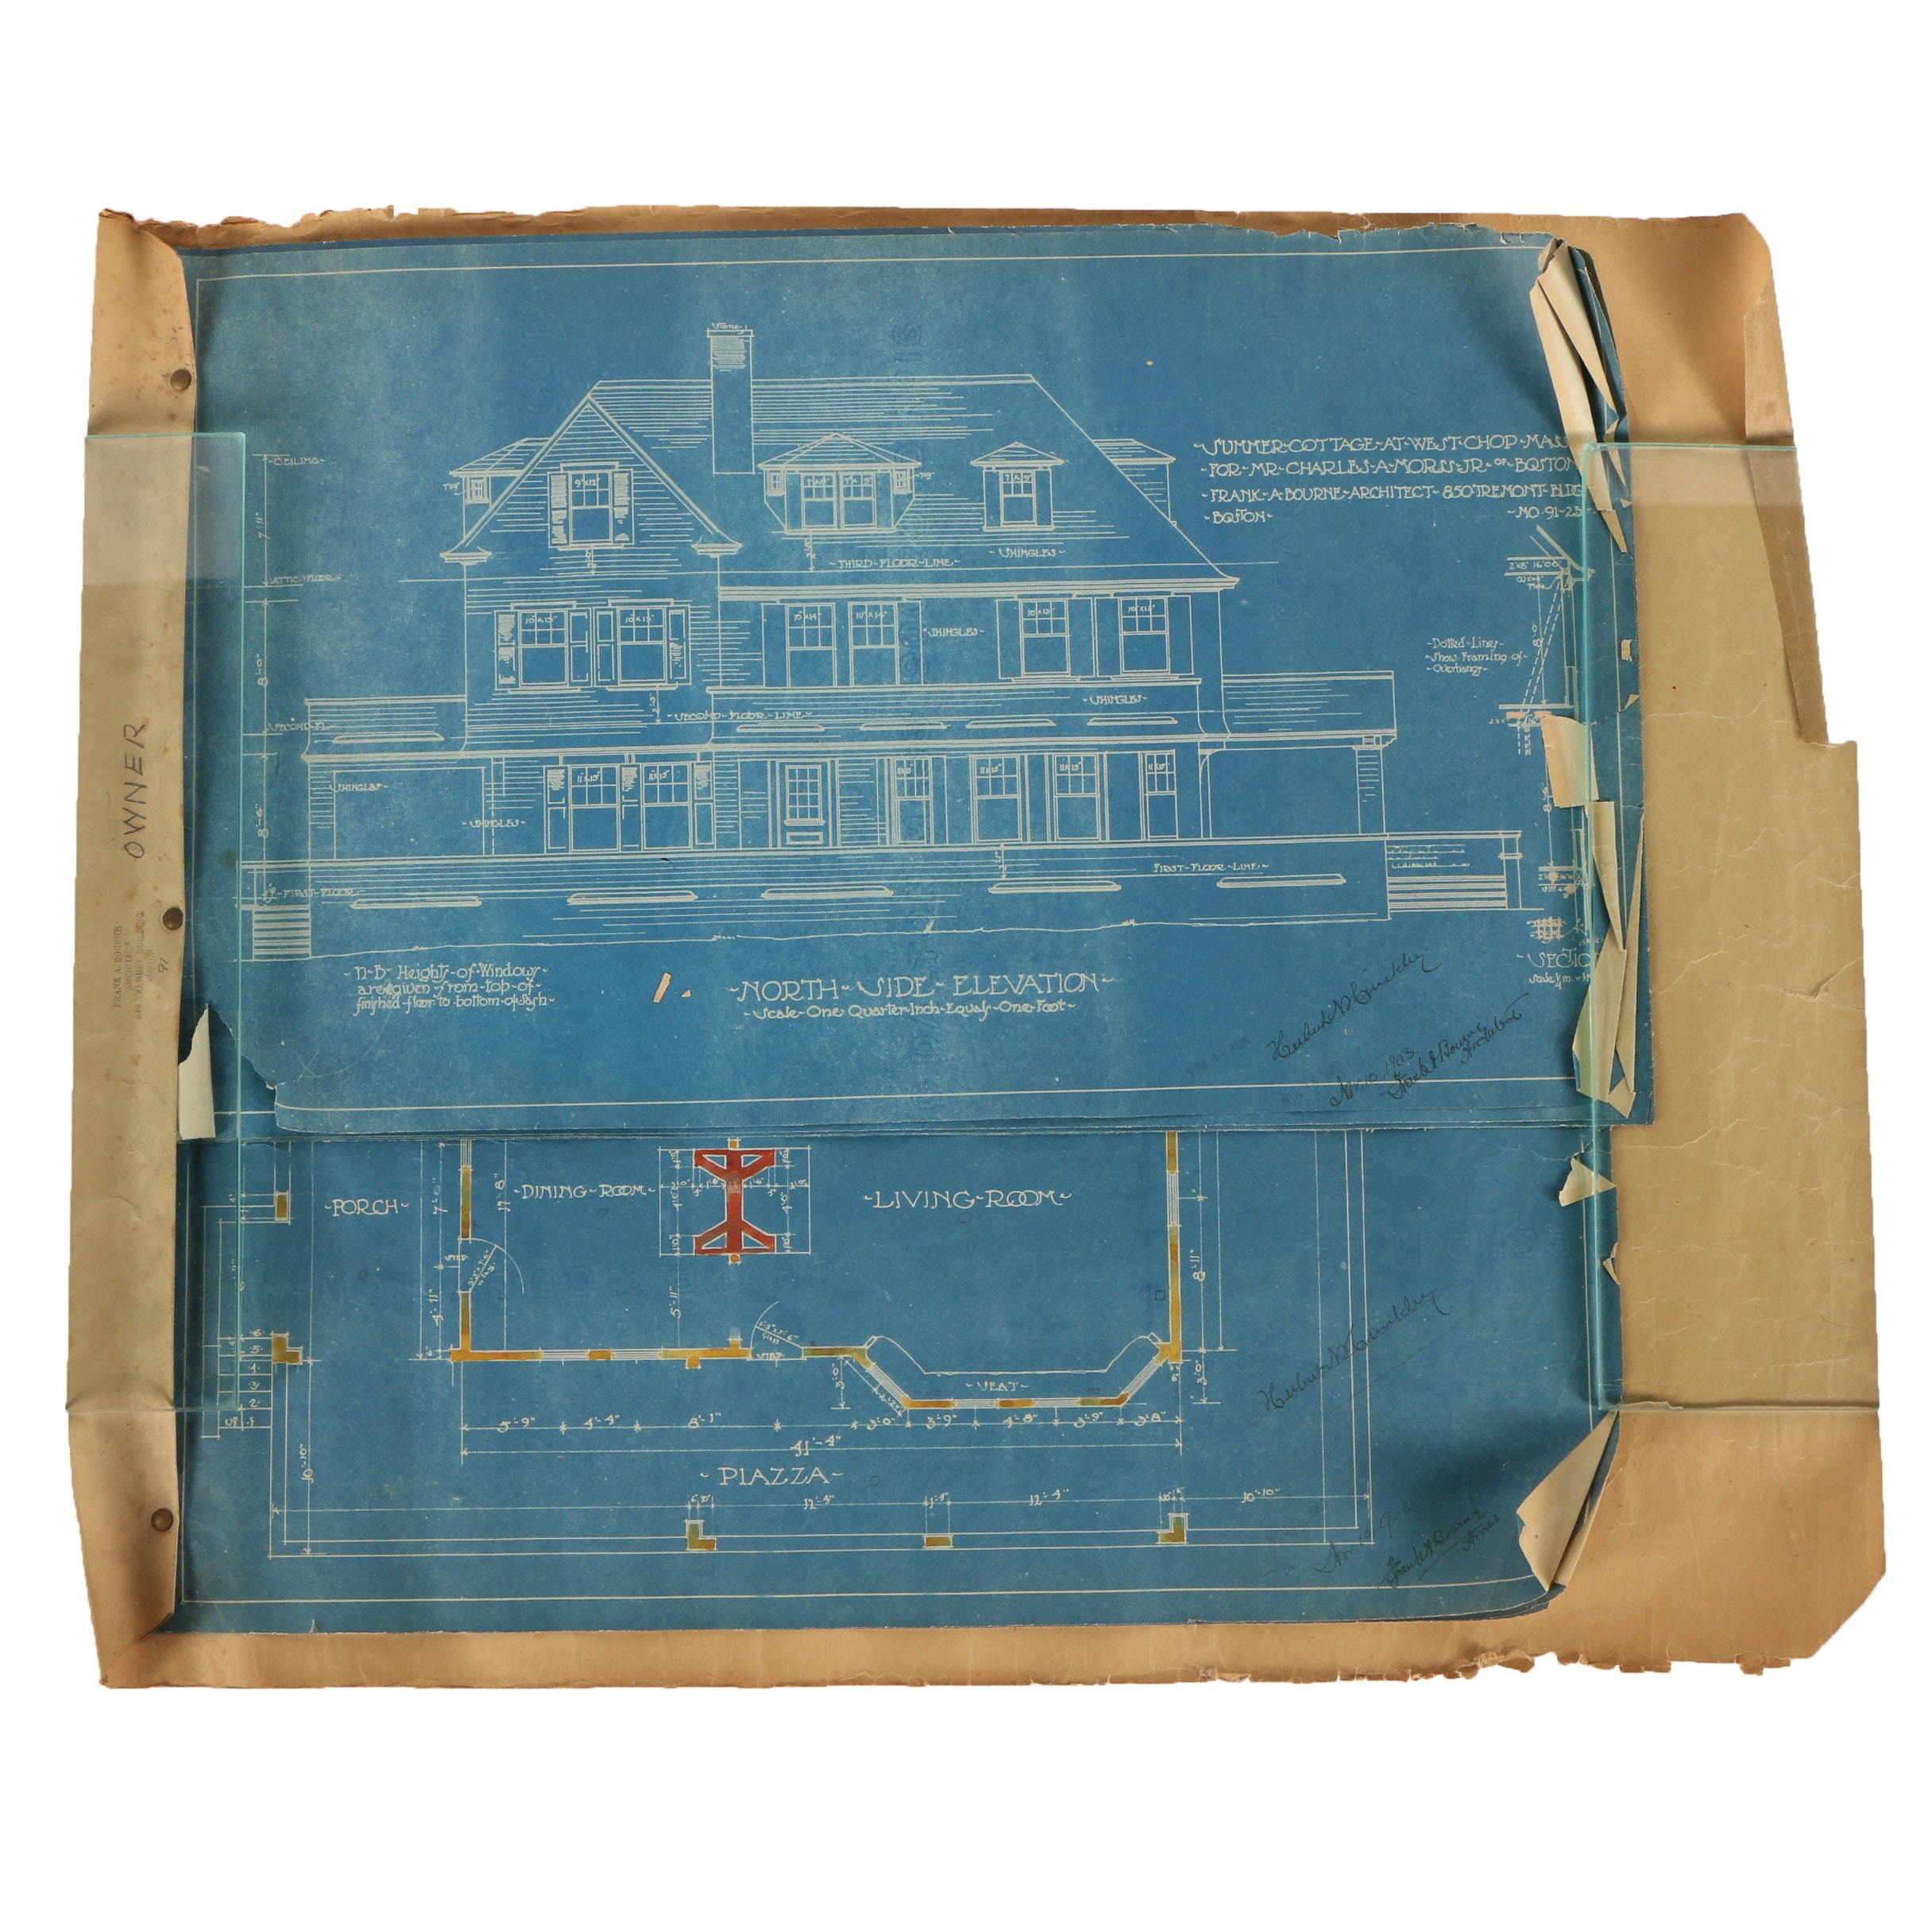 1903 Blueprints for Charles A. Morss House in Martha's Vineyard